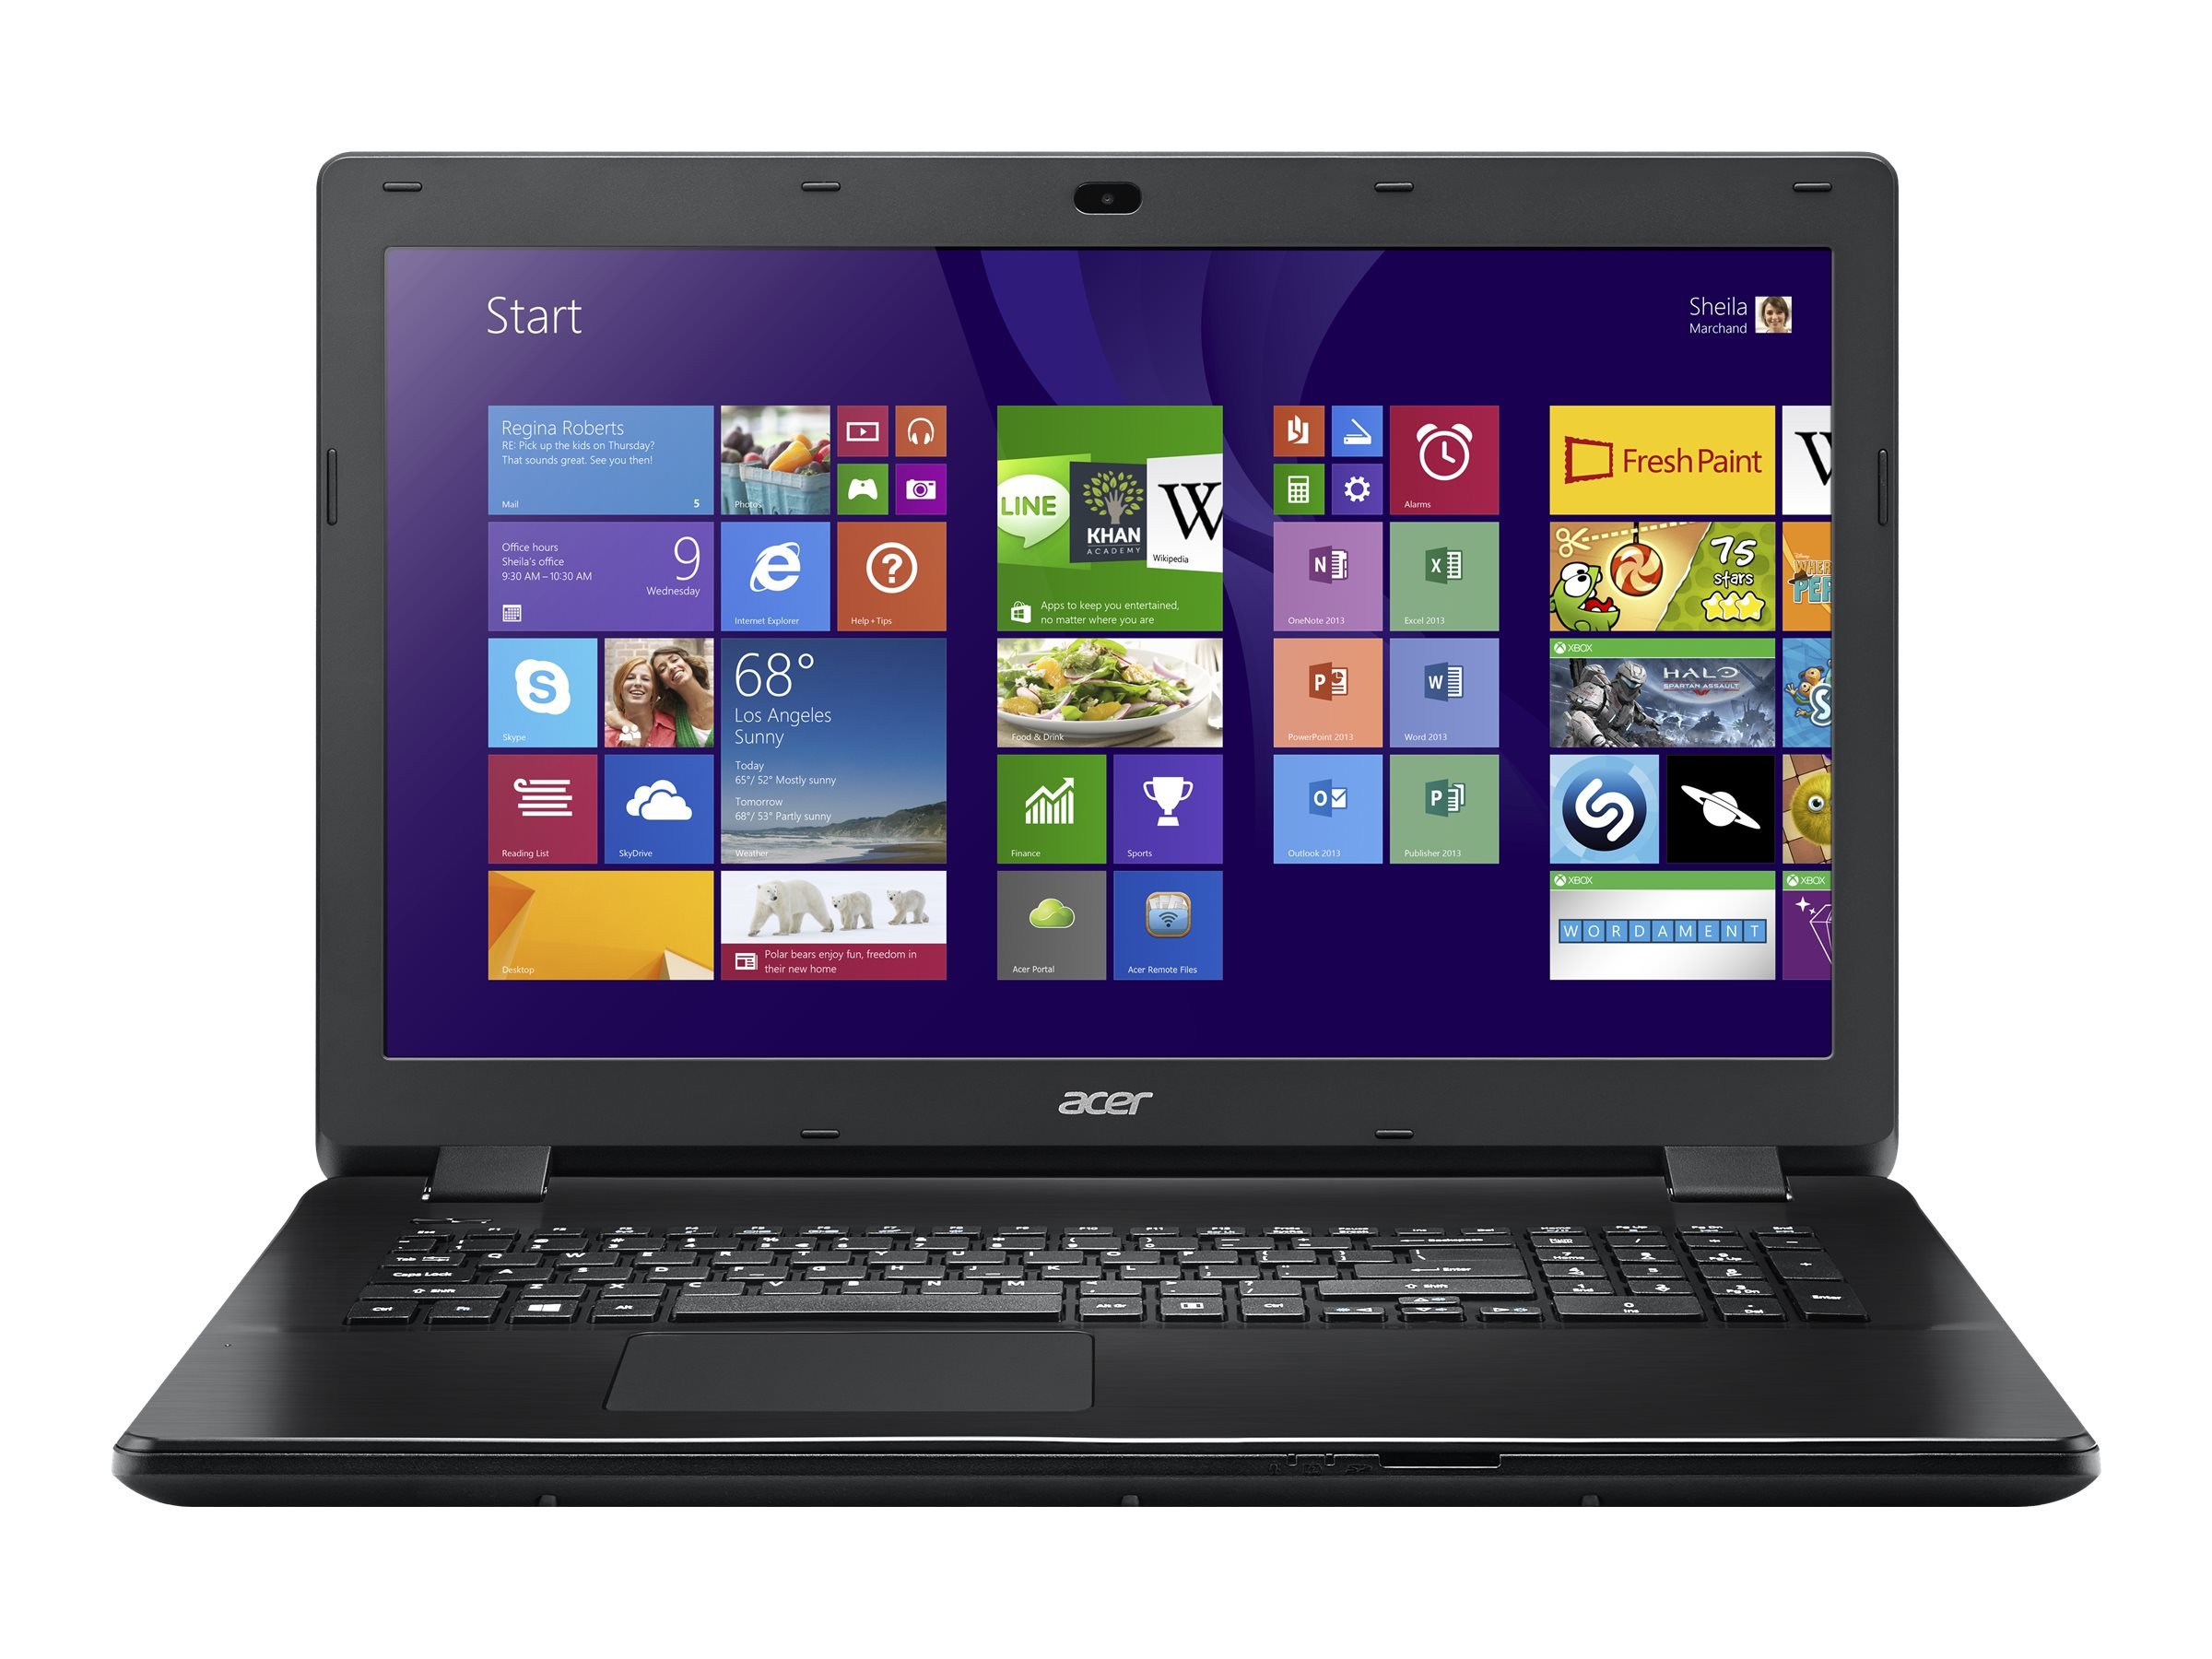 Acer Aspire E5-721-64T8 AMD A6-6310 1.8GHz 6GB 500GB bgn GNIC WC 4C 17.3 HD+ W8.1-64, NX.MNDAA.016, 30608501, Notebooks